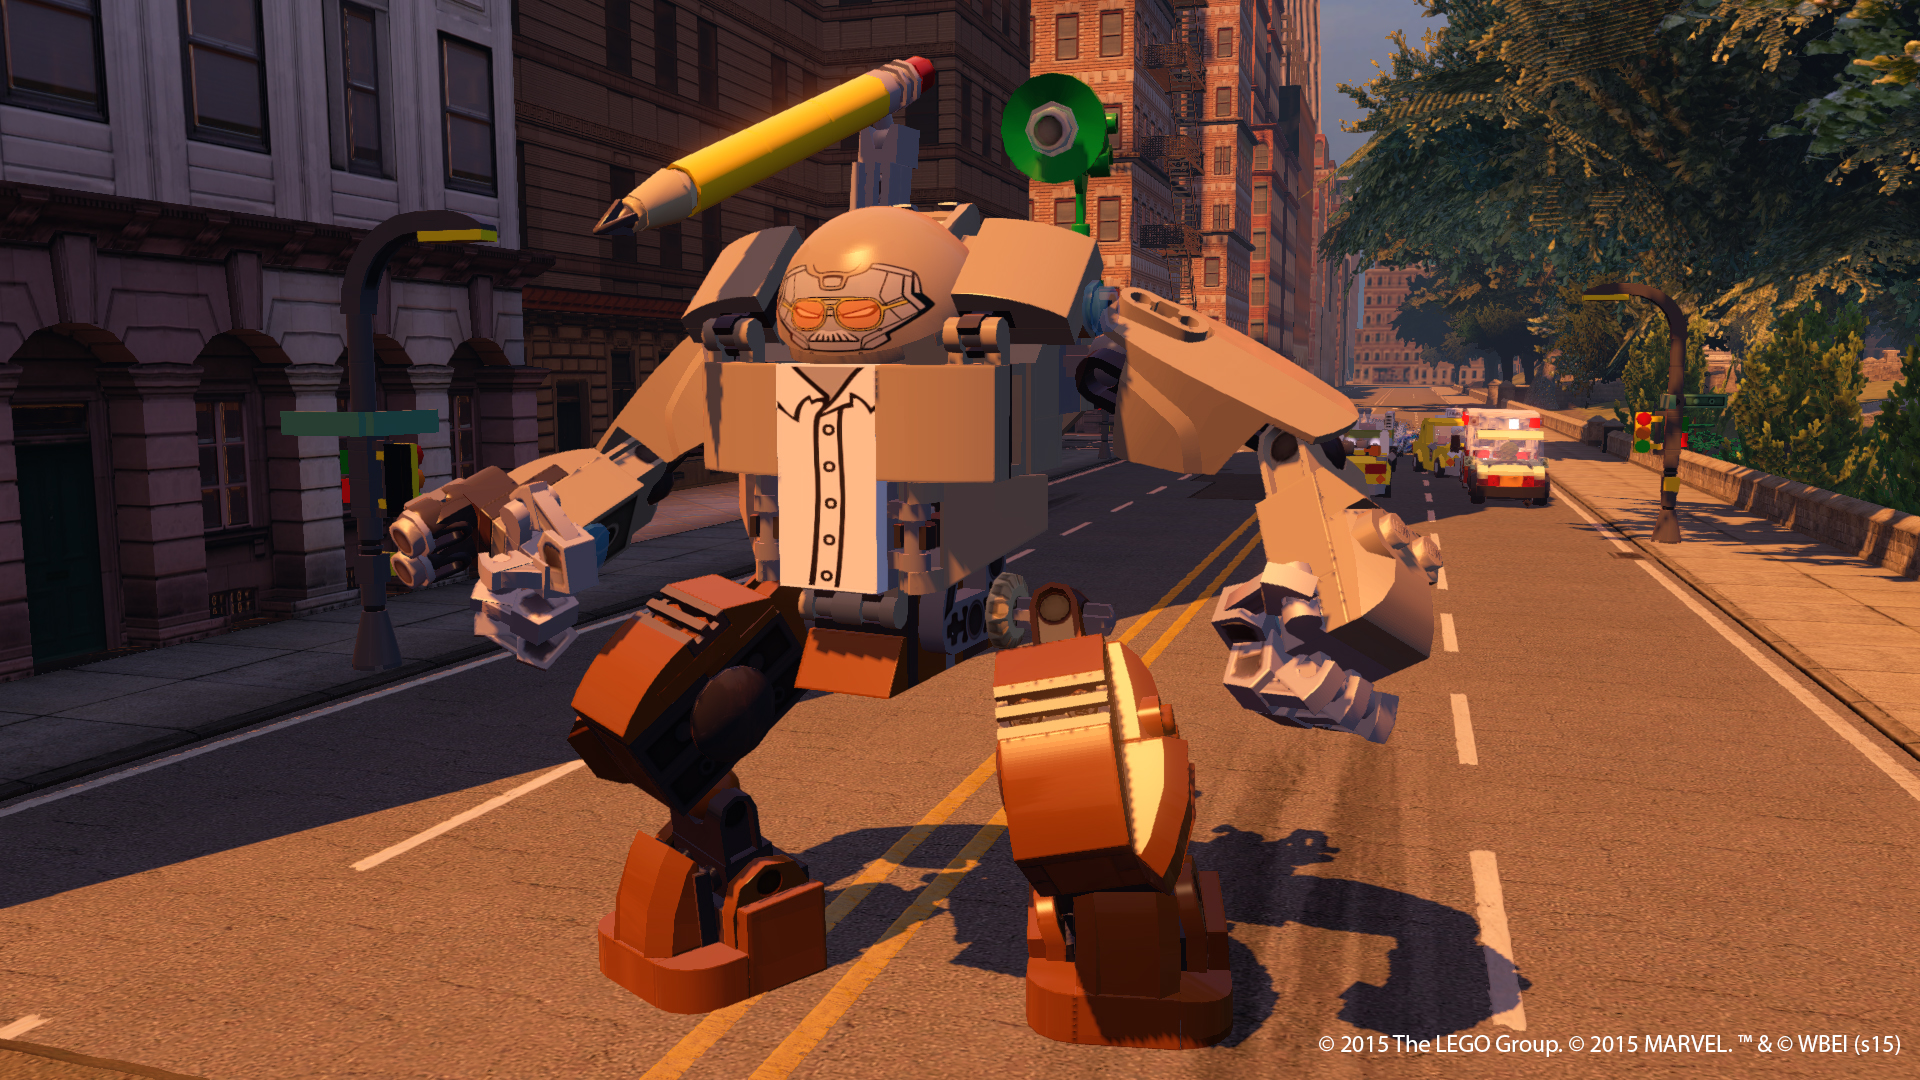 Stan Lee is a playable character in the new Lego Marvel's Avengers game.